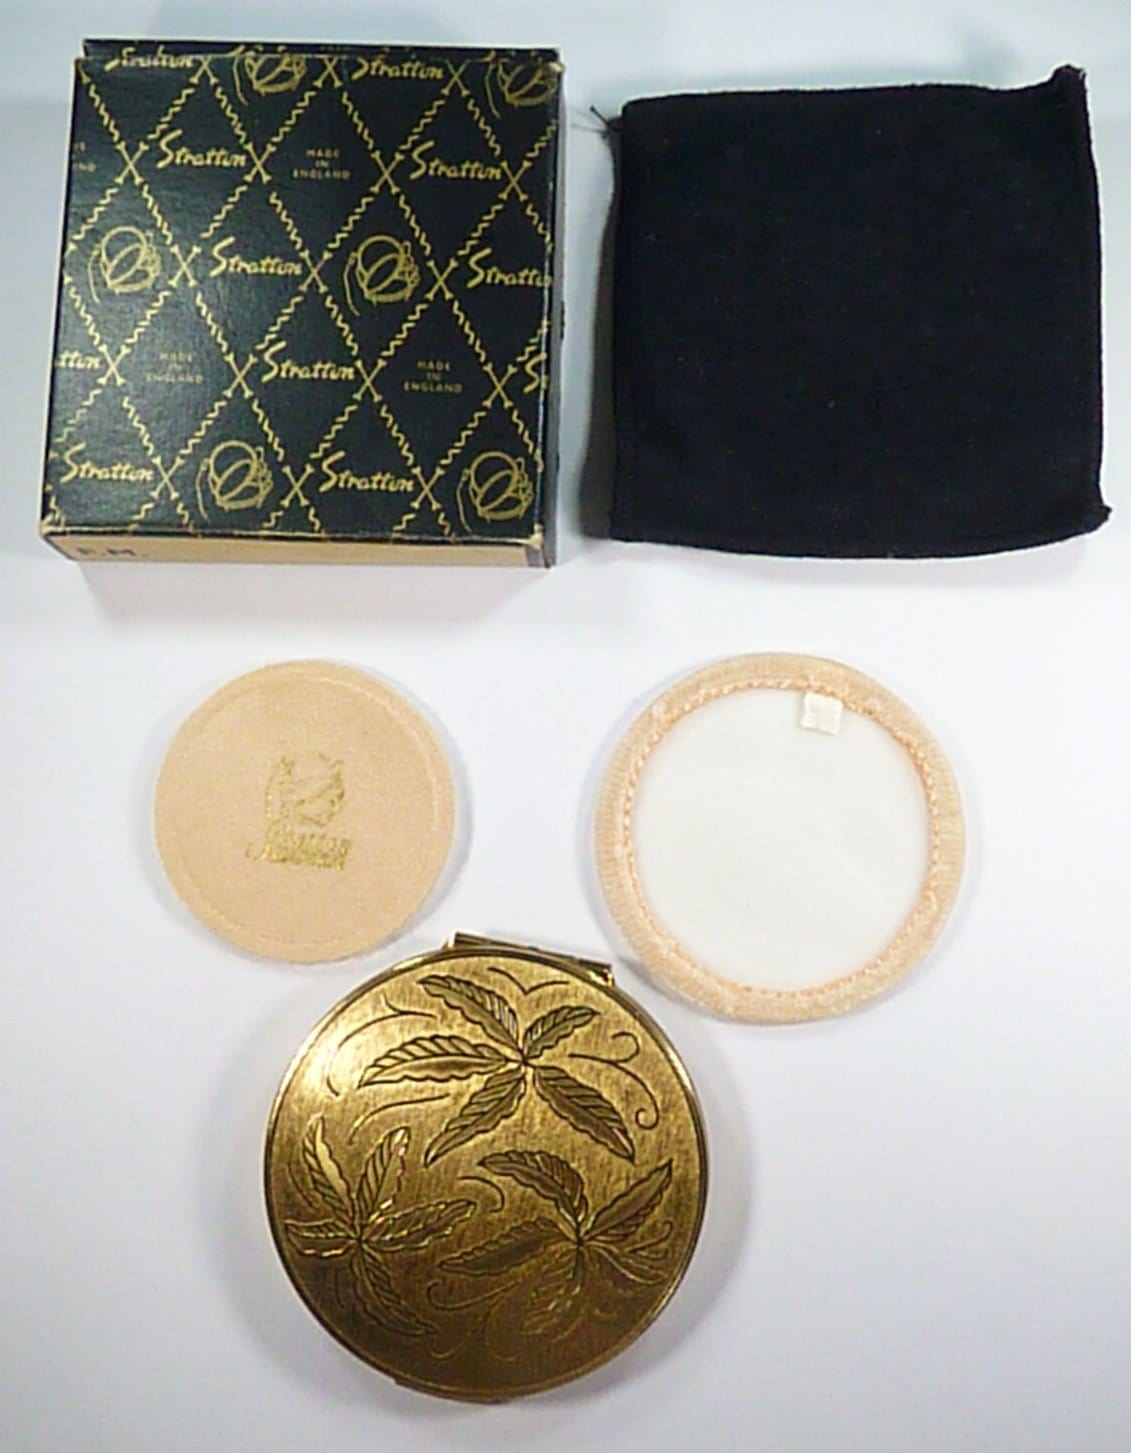 Boxed Unused Stratton Powder Compact